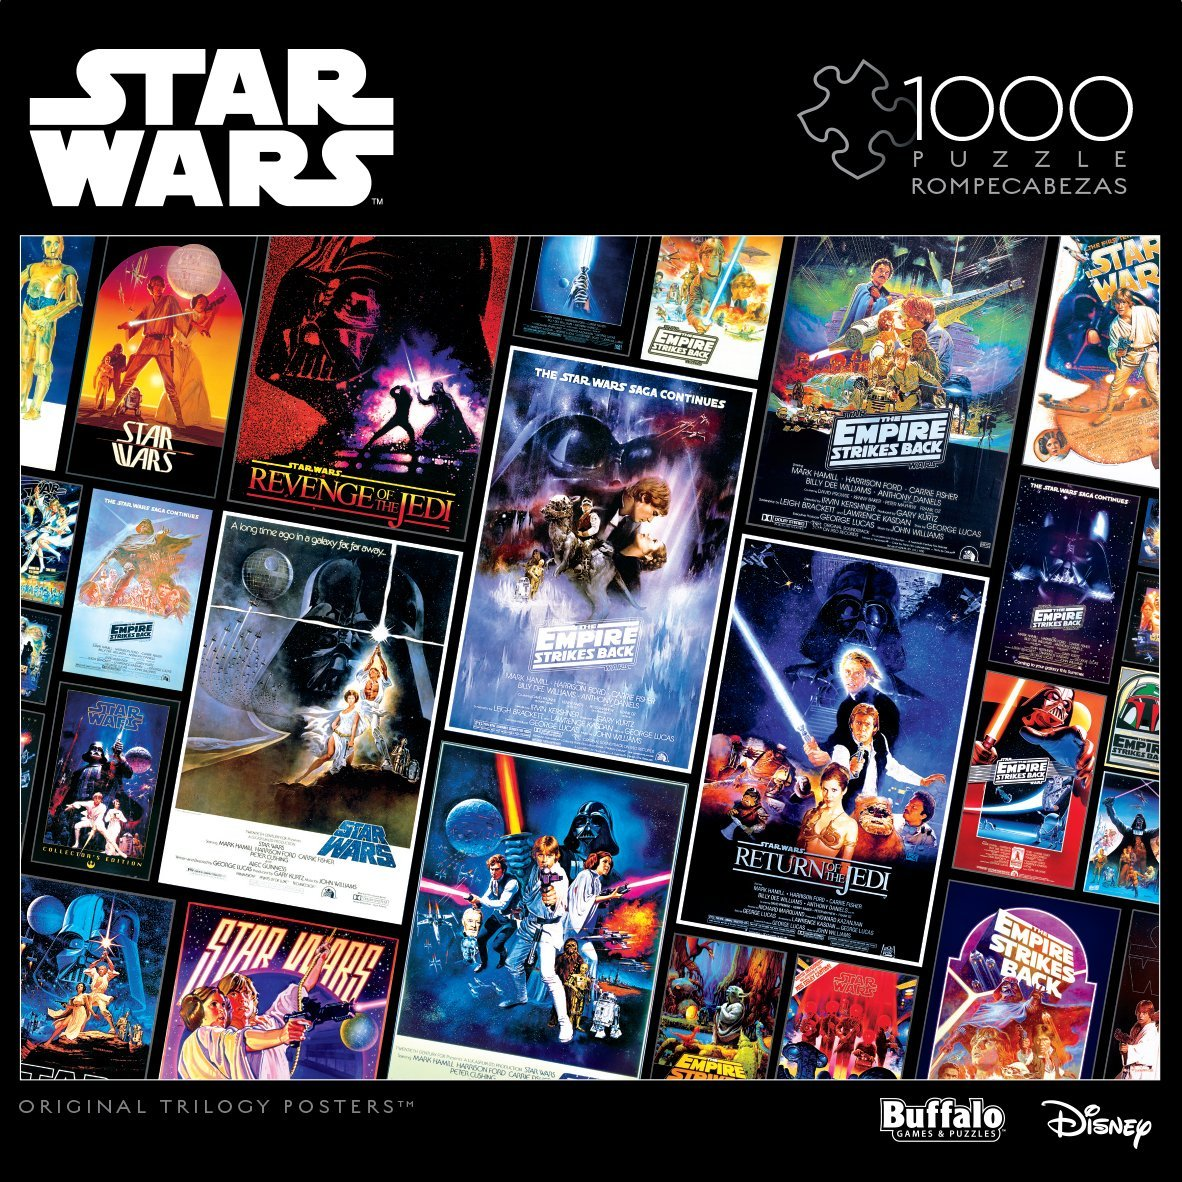 Star Wars Assortment: The Original Trilogy Posters 1000